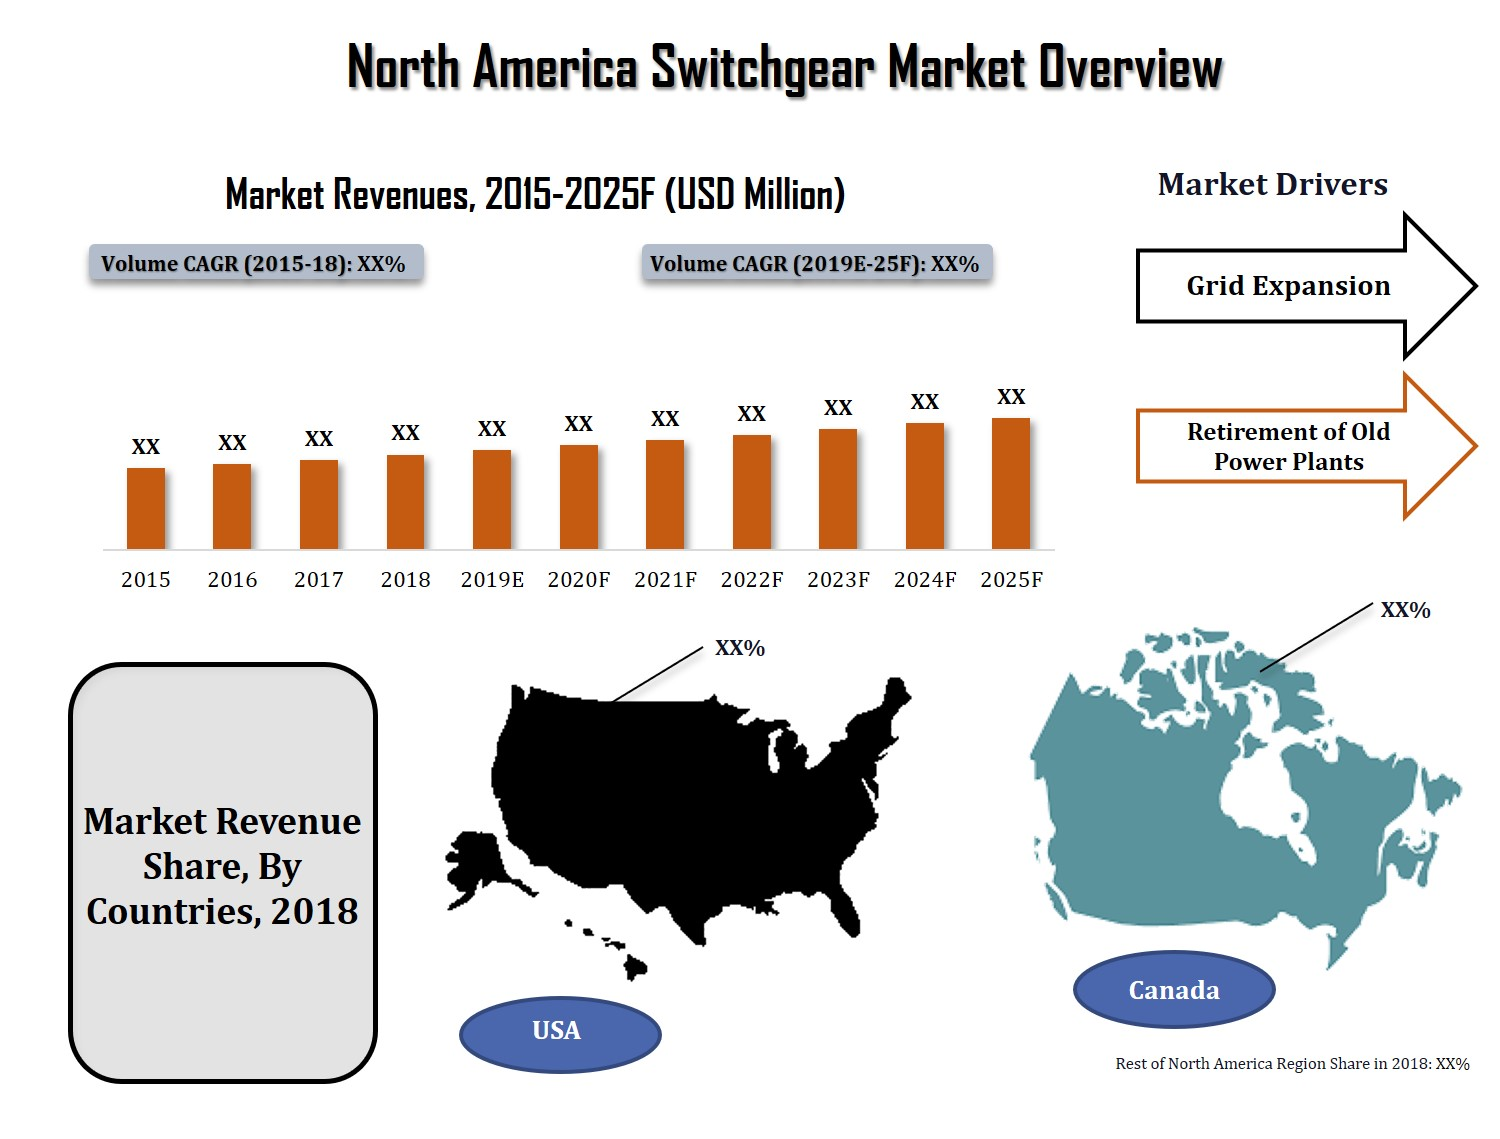 North America Switchgear Market